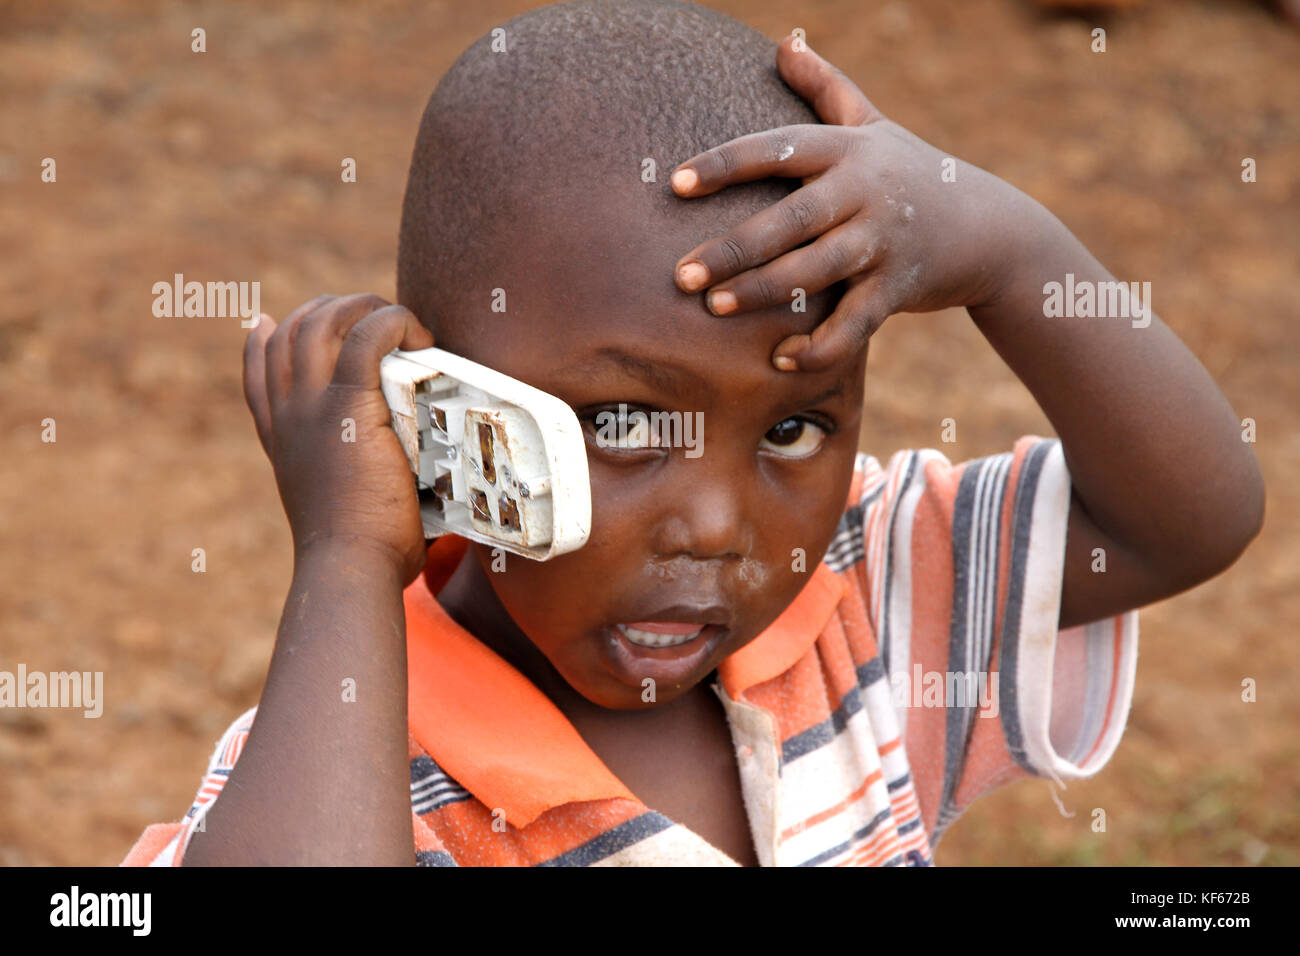 Living in the Kenya Slum Aerias - Young kid playing with broken phone - Stock Image